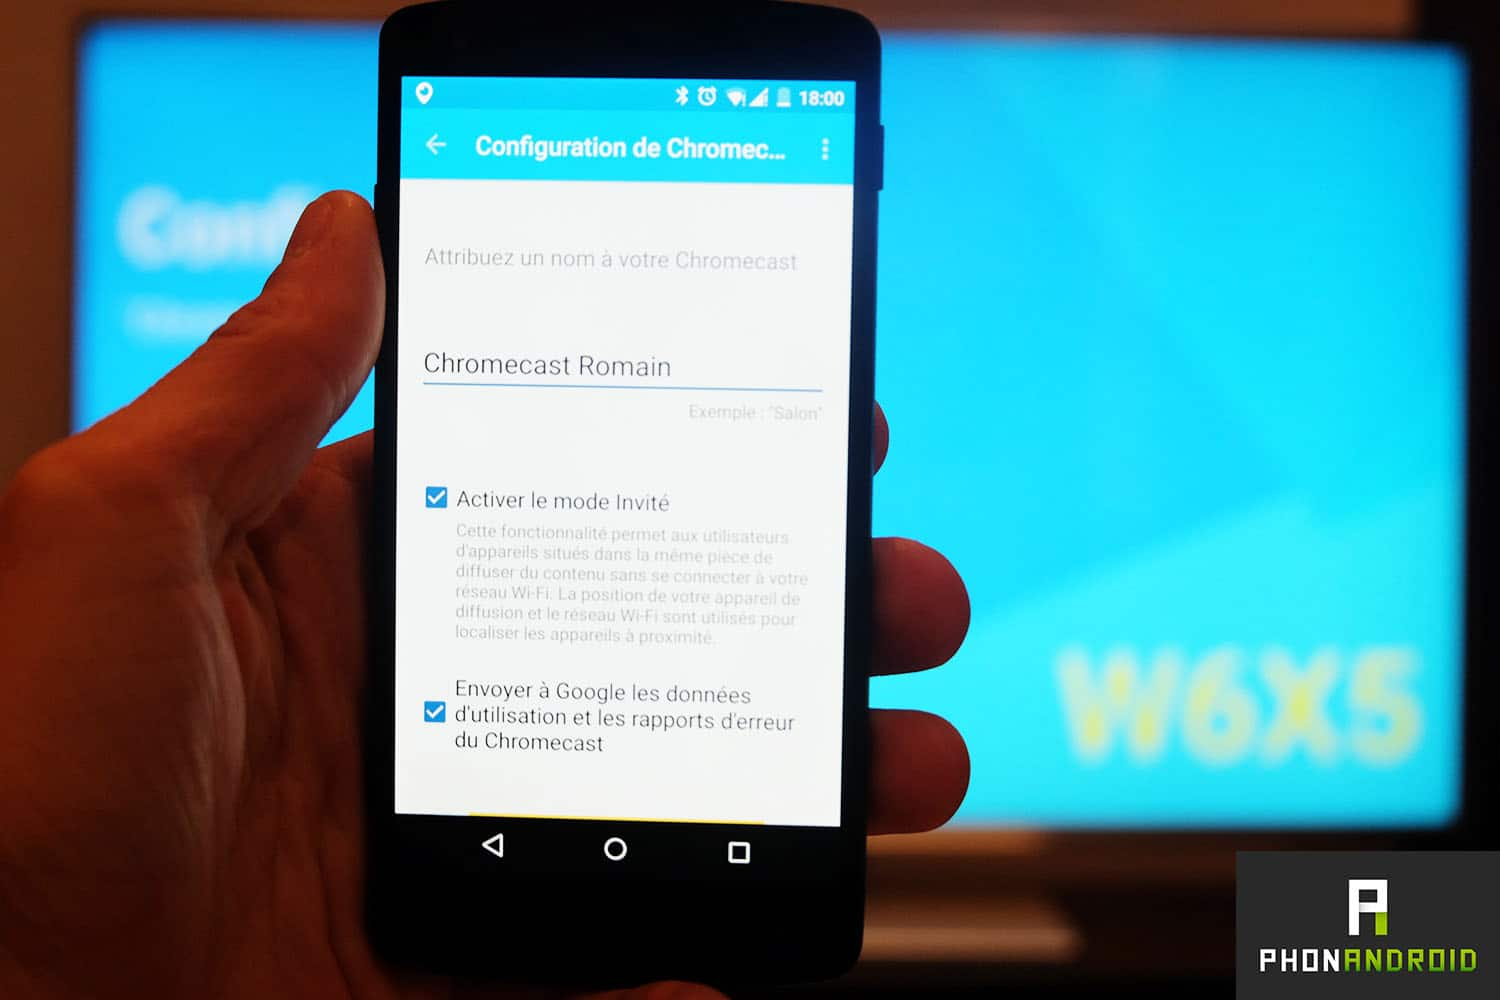 chromecast-2-appairage-wifi-android